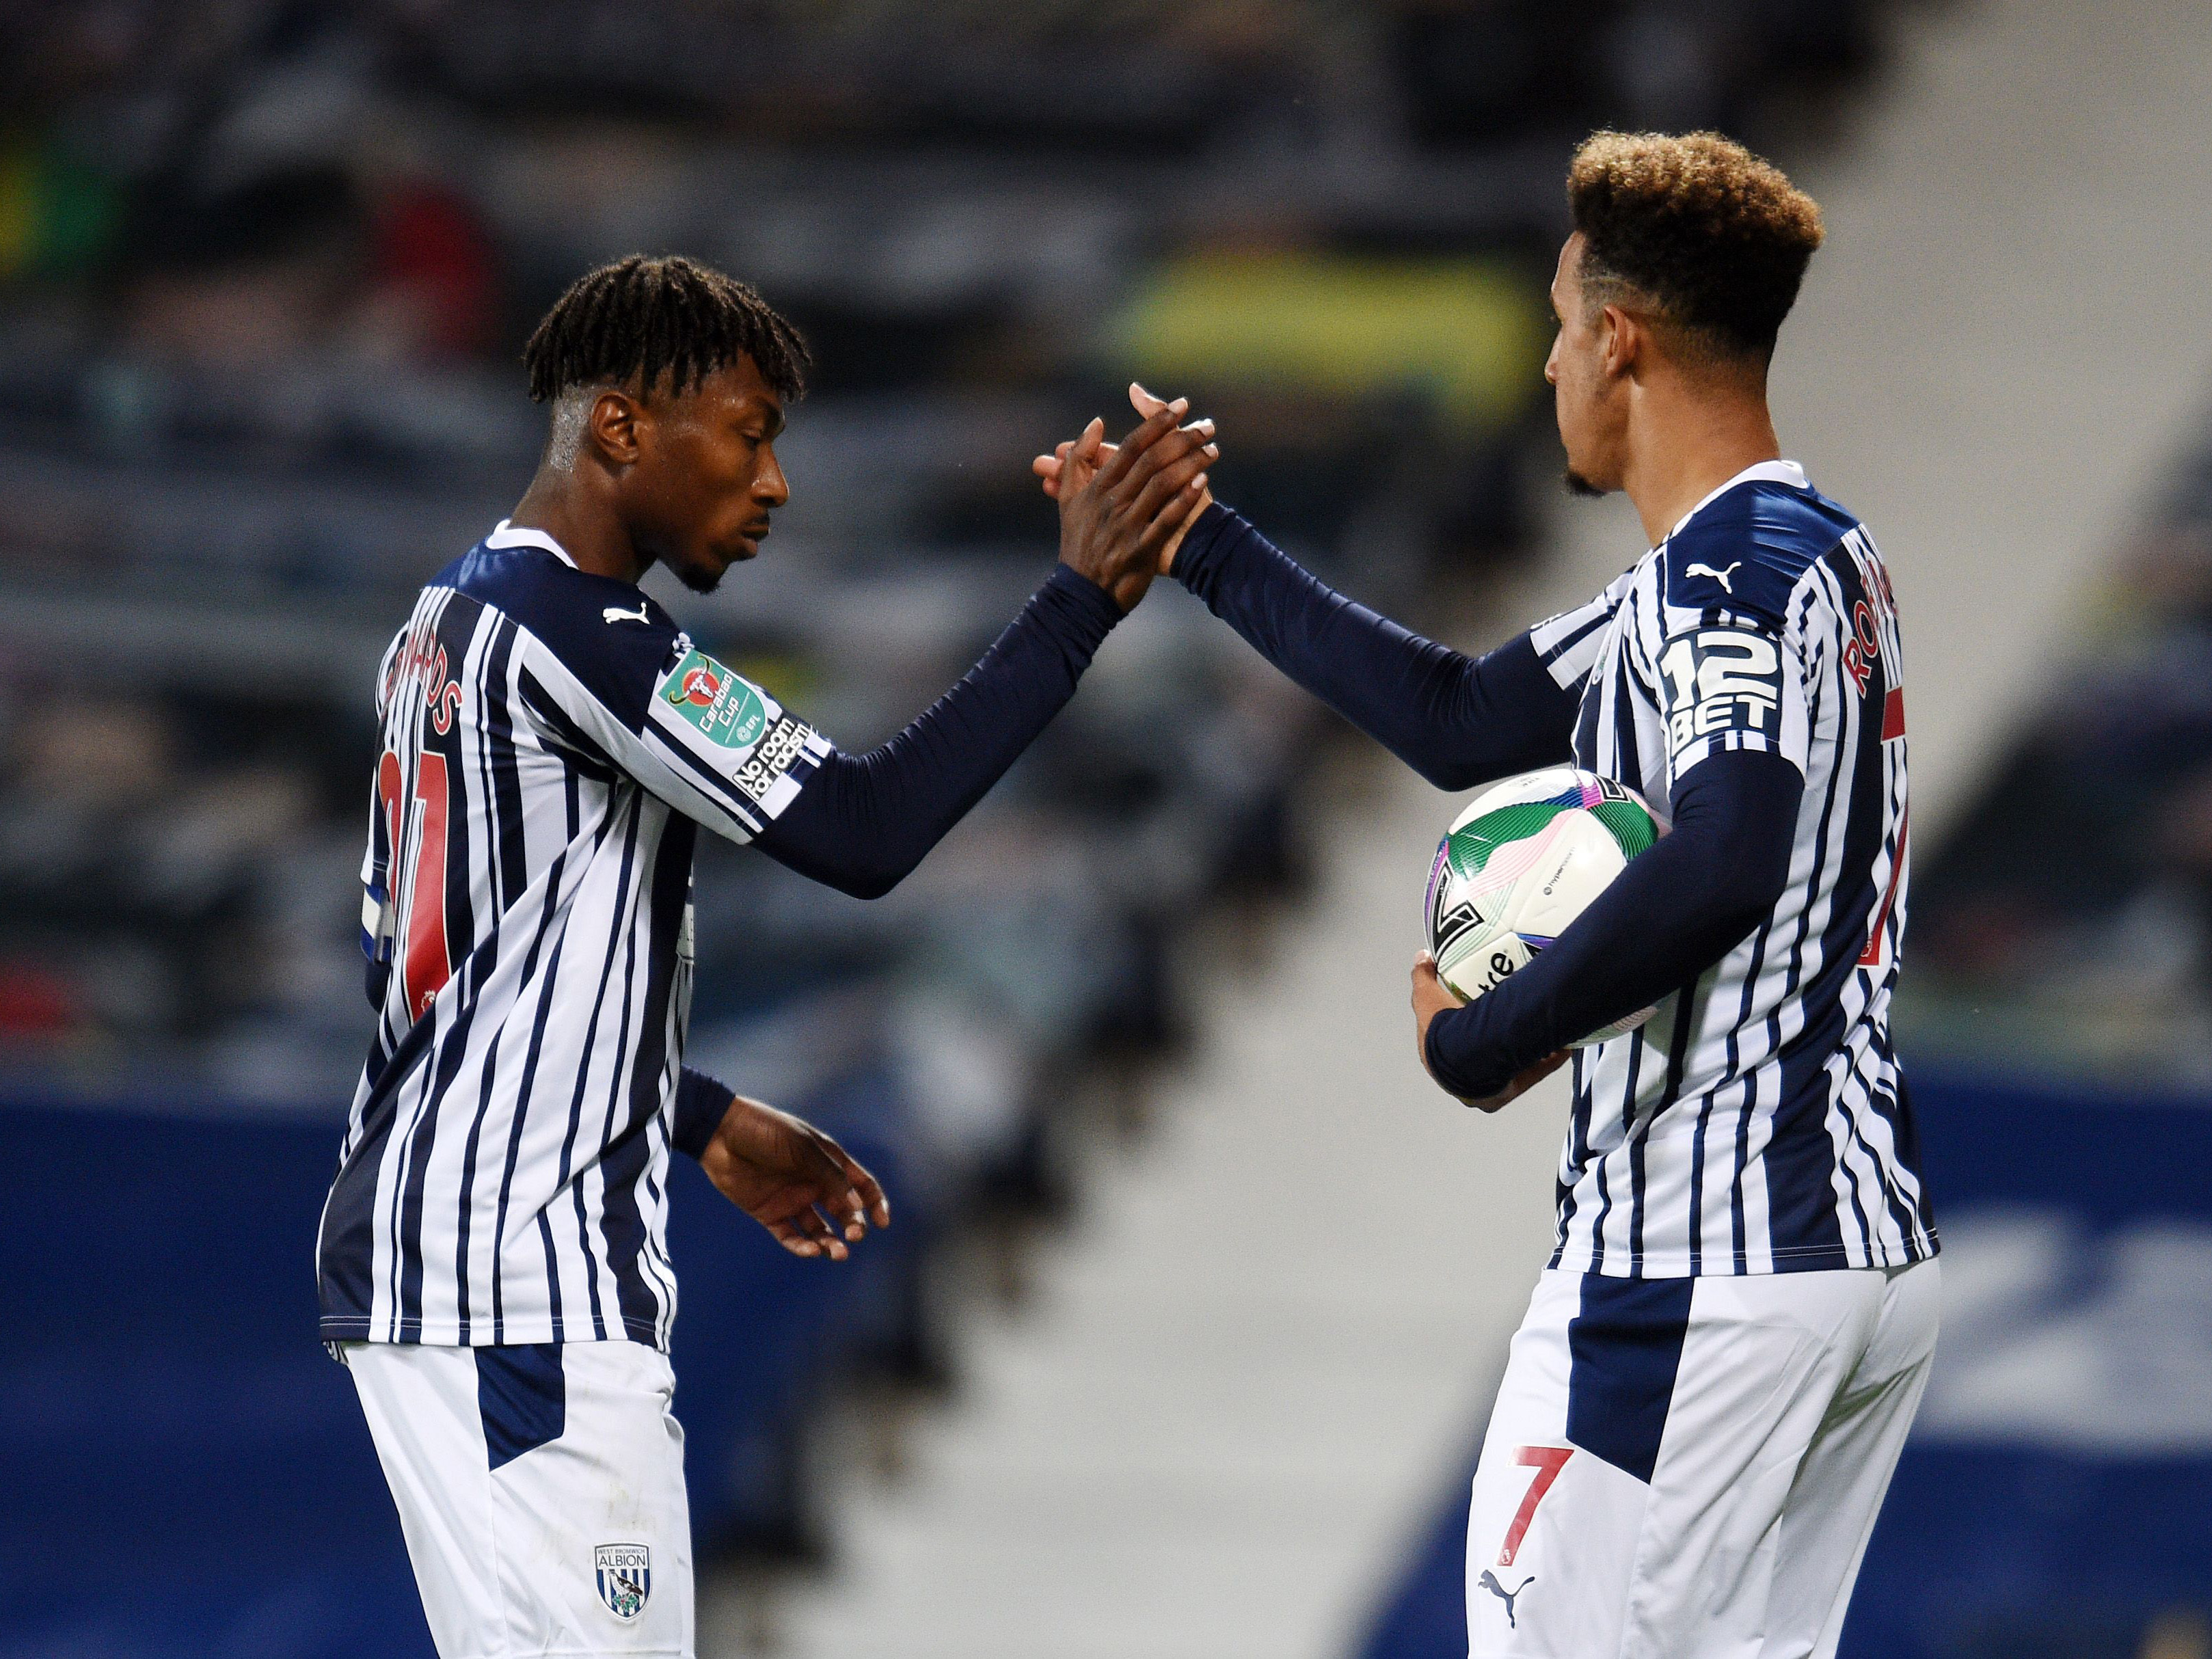 The full highlights from Albion's 3-0 Carabao Cup victory over Harrogate